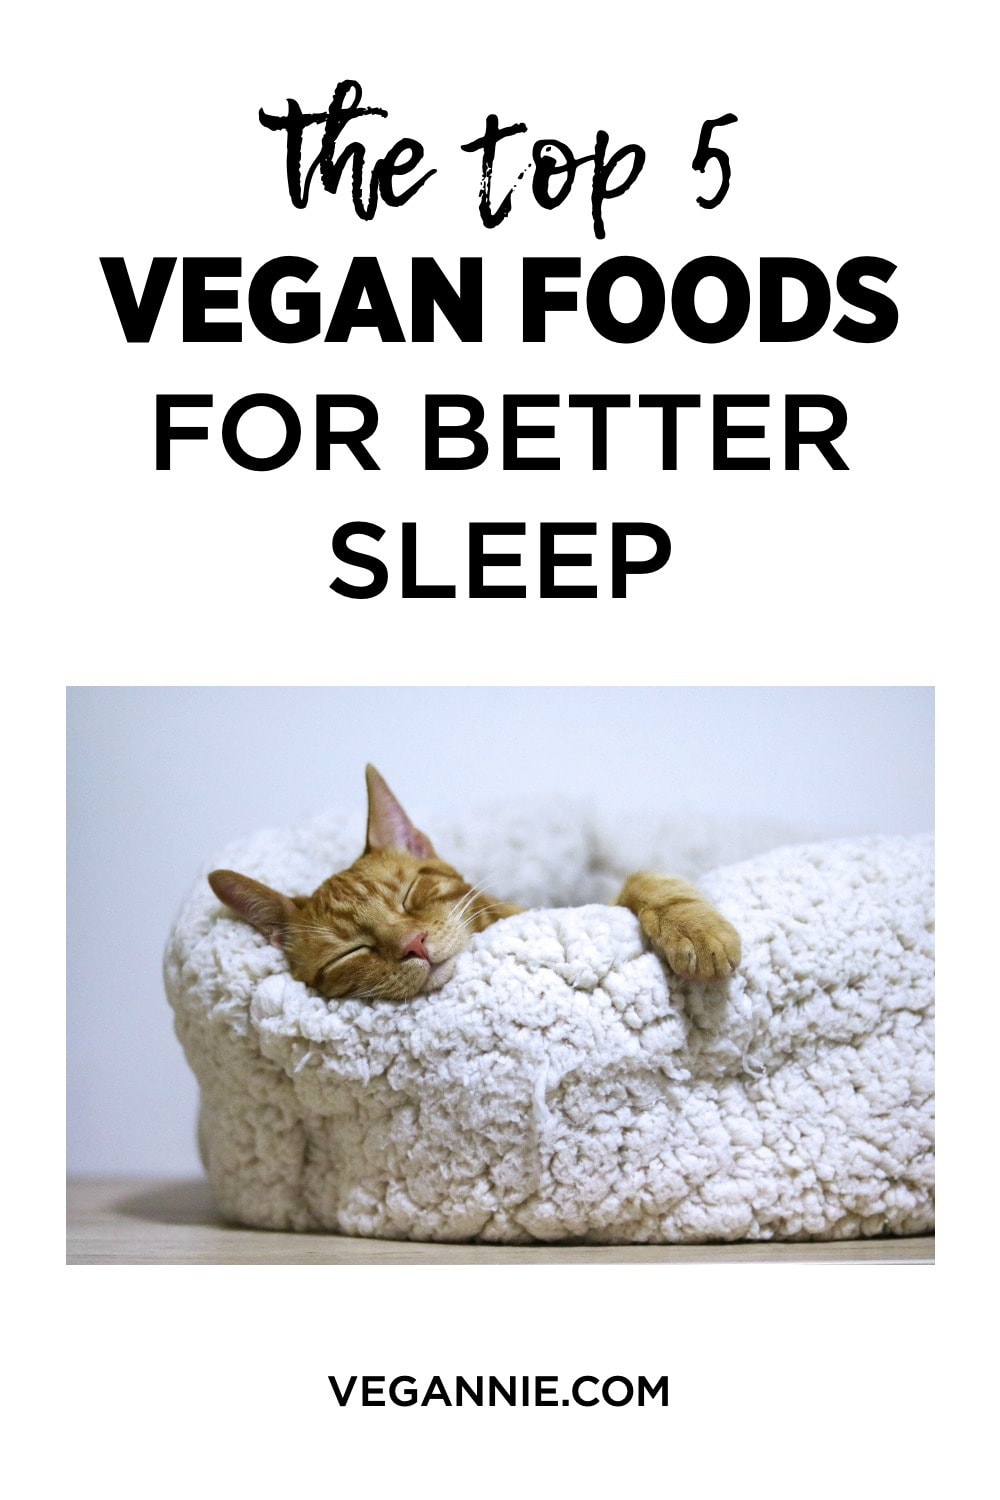 Your ultimate guide to better sleep! The TOP 5 best vegan foods that will help you get a great night's sleep.